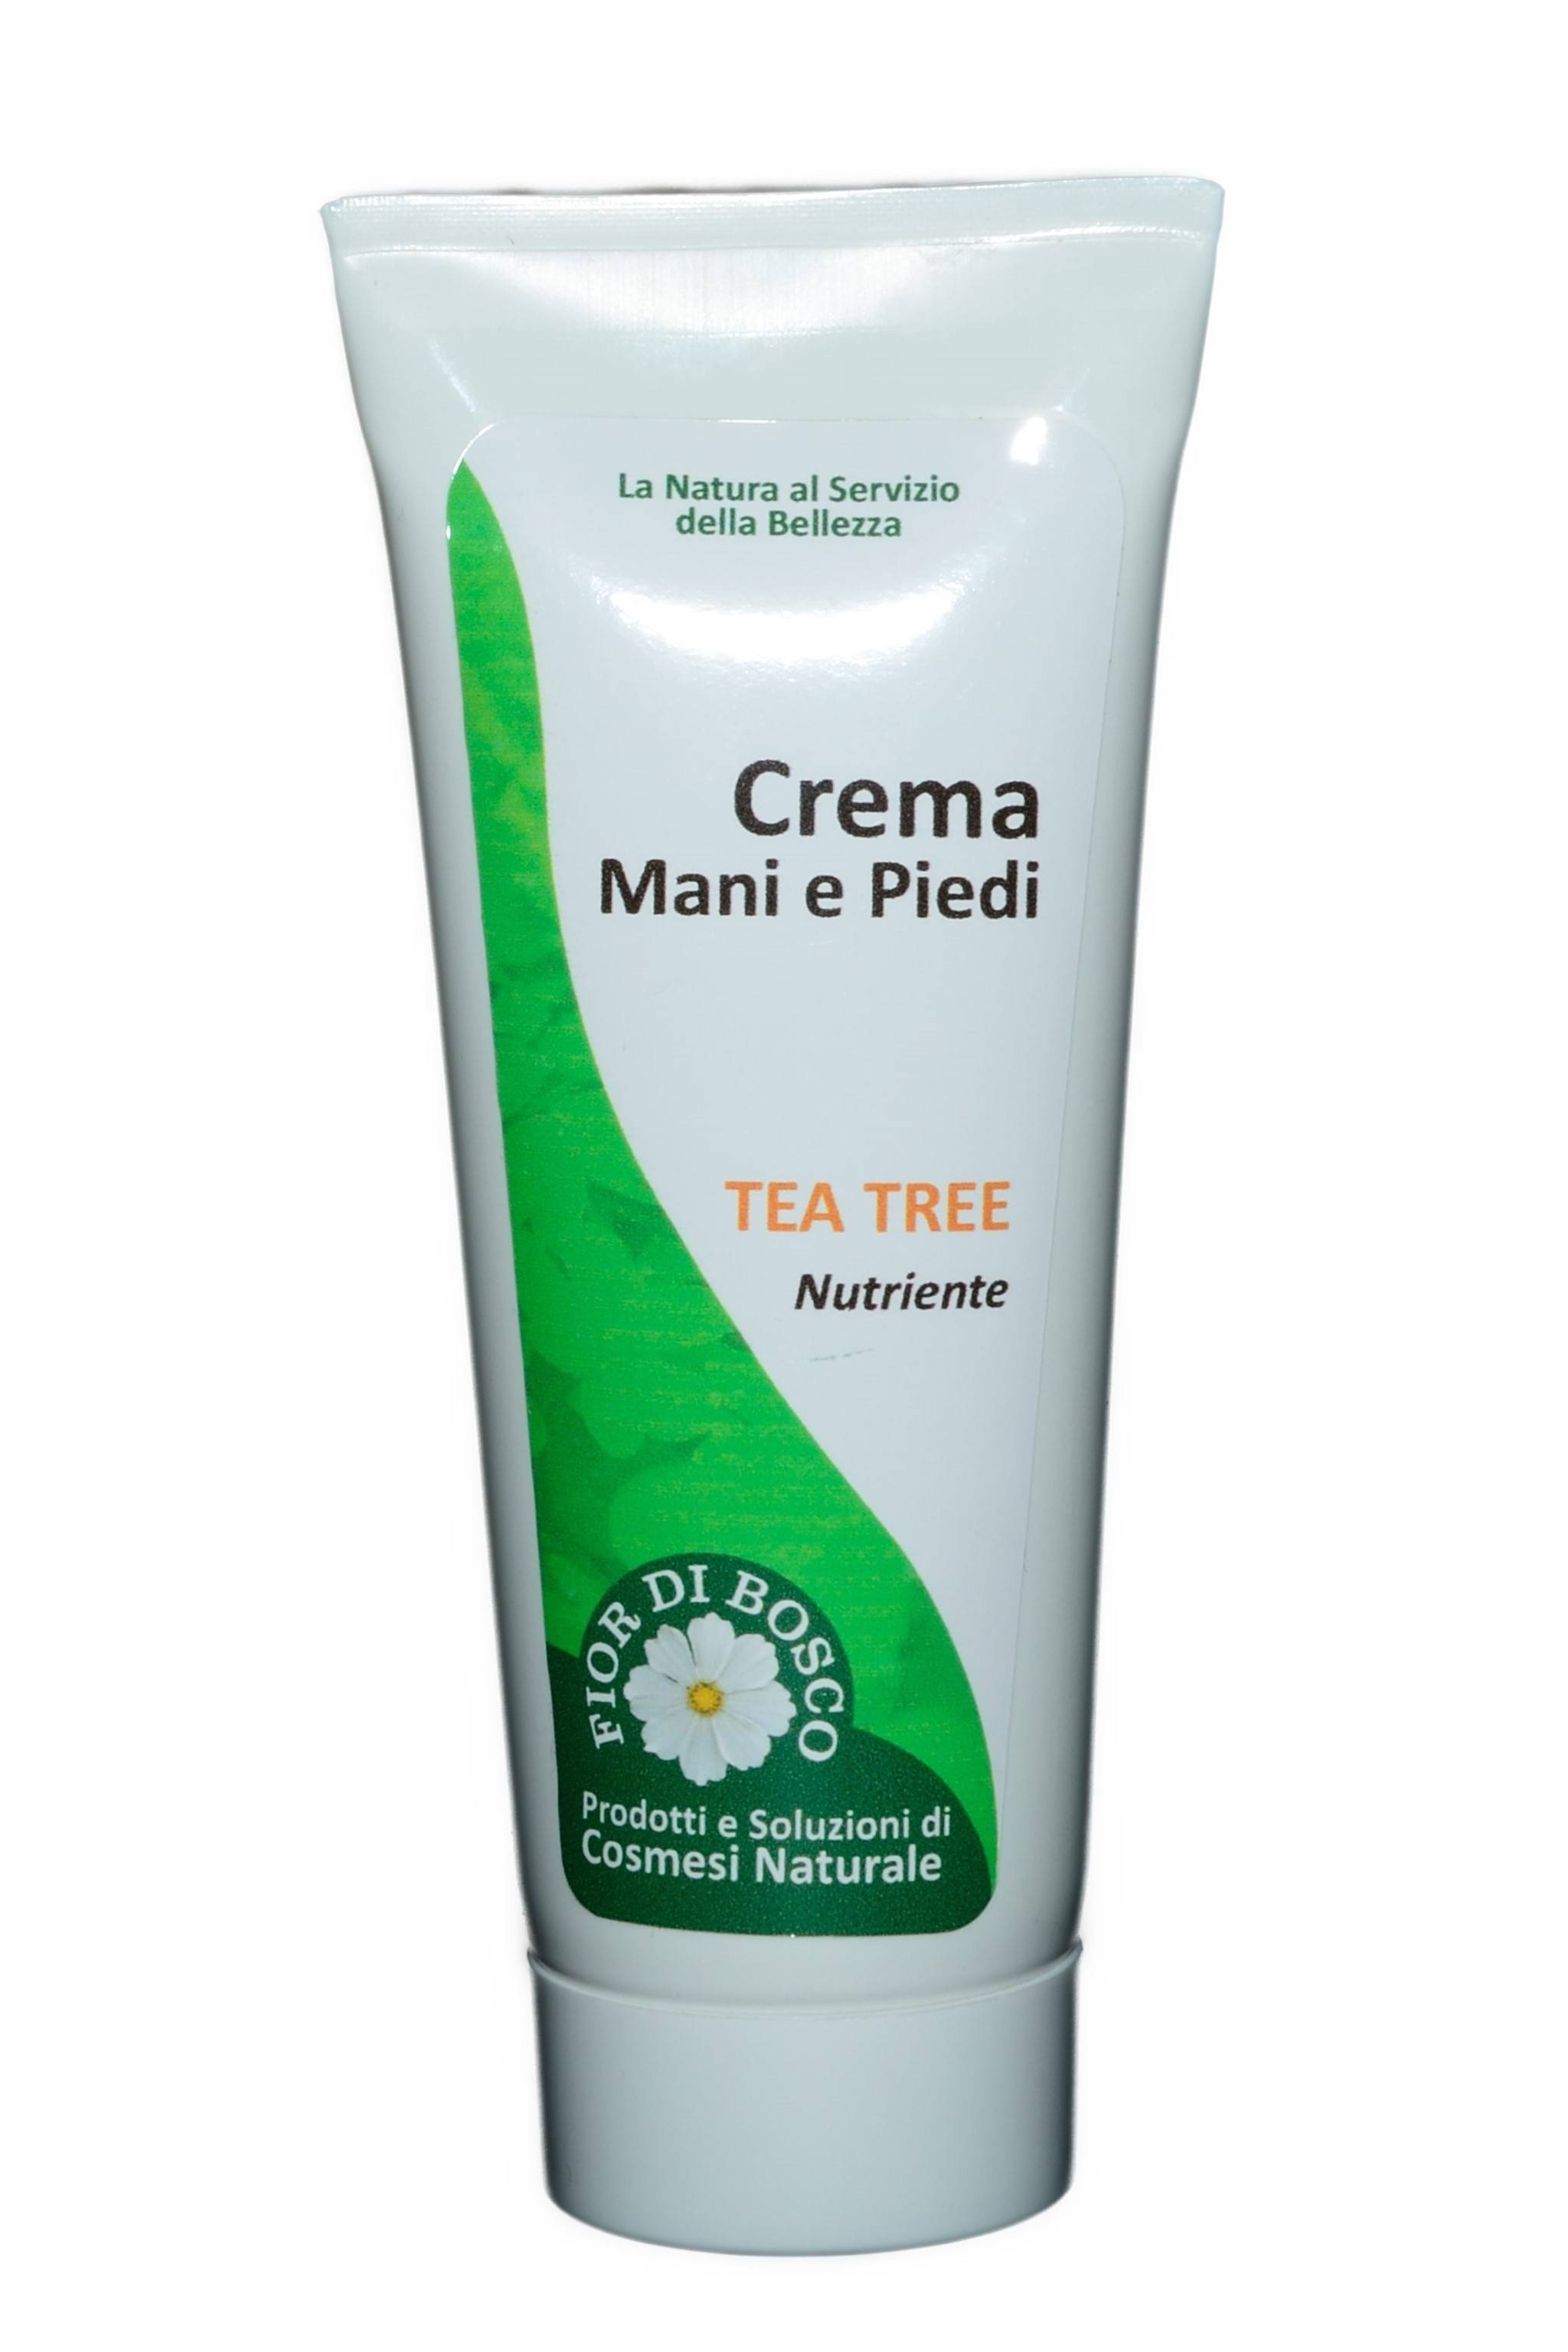 Centisia Crema mani e piedi al tea tree 100ml